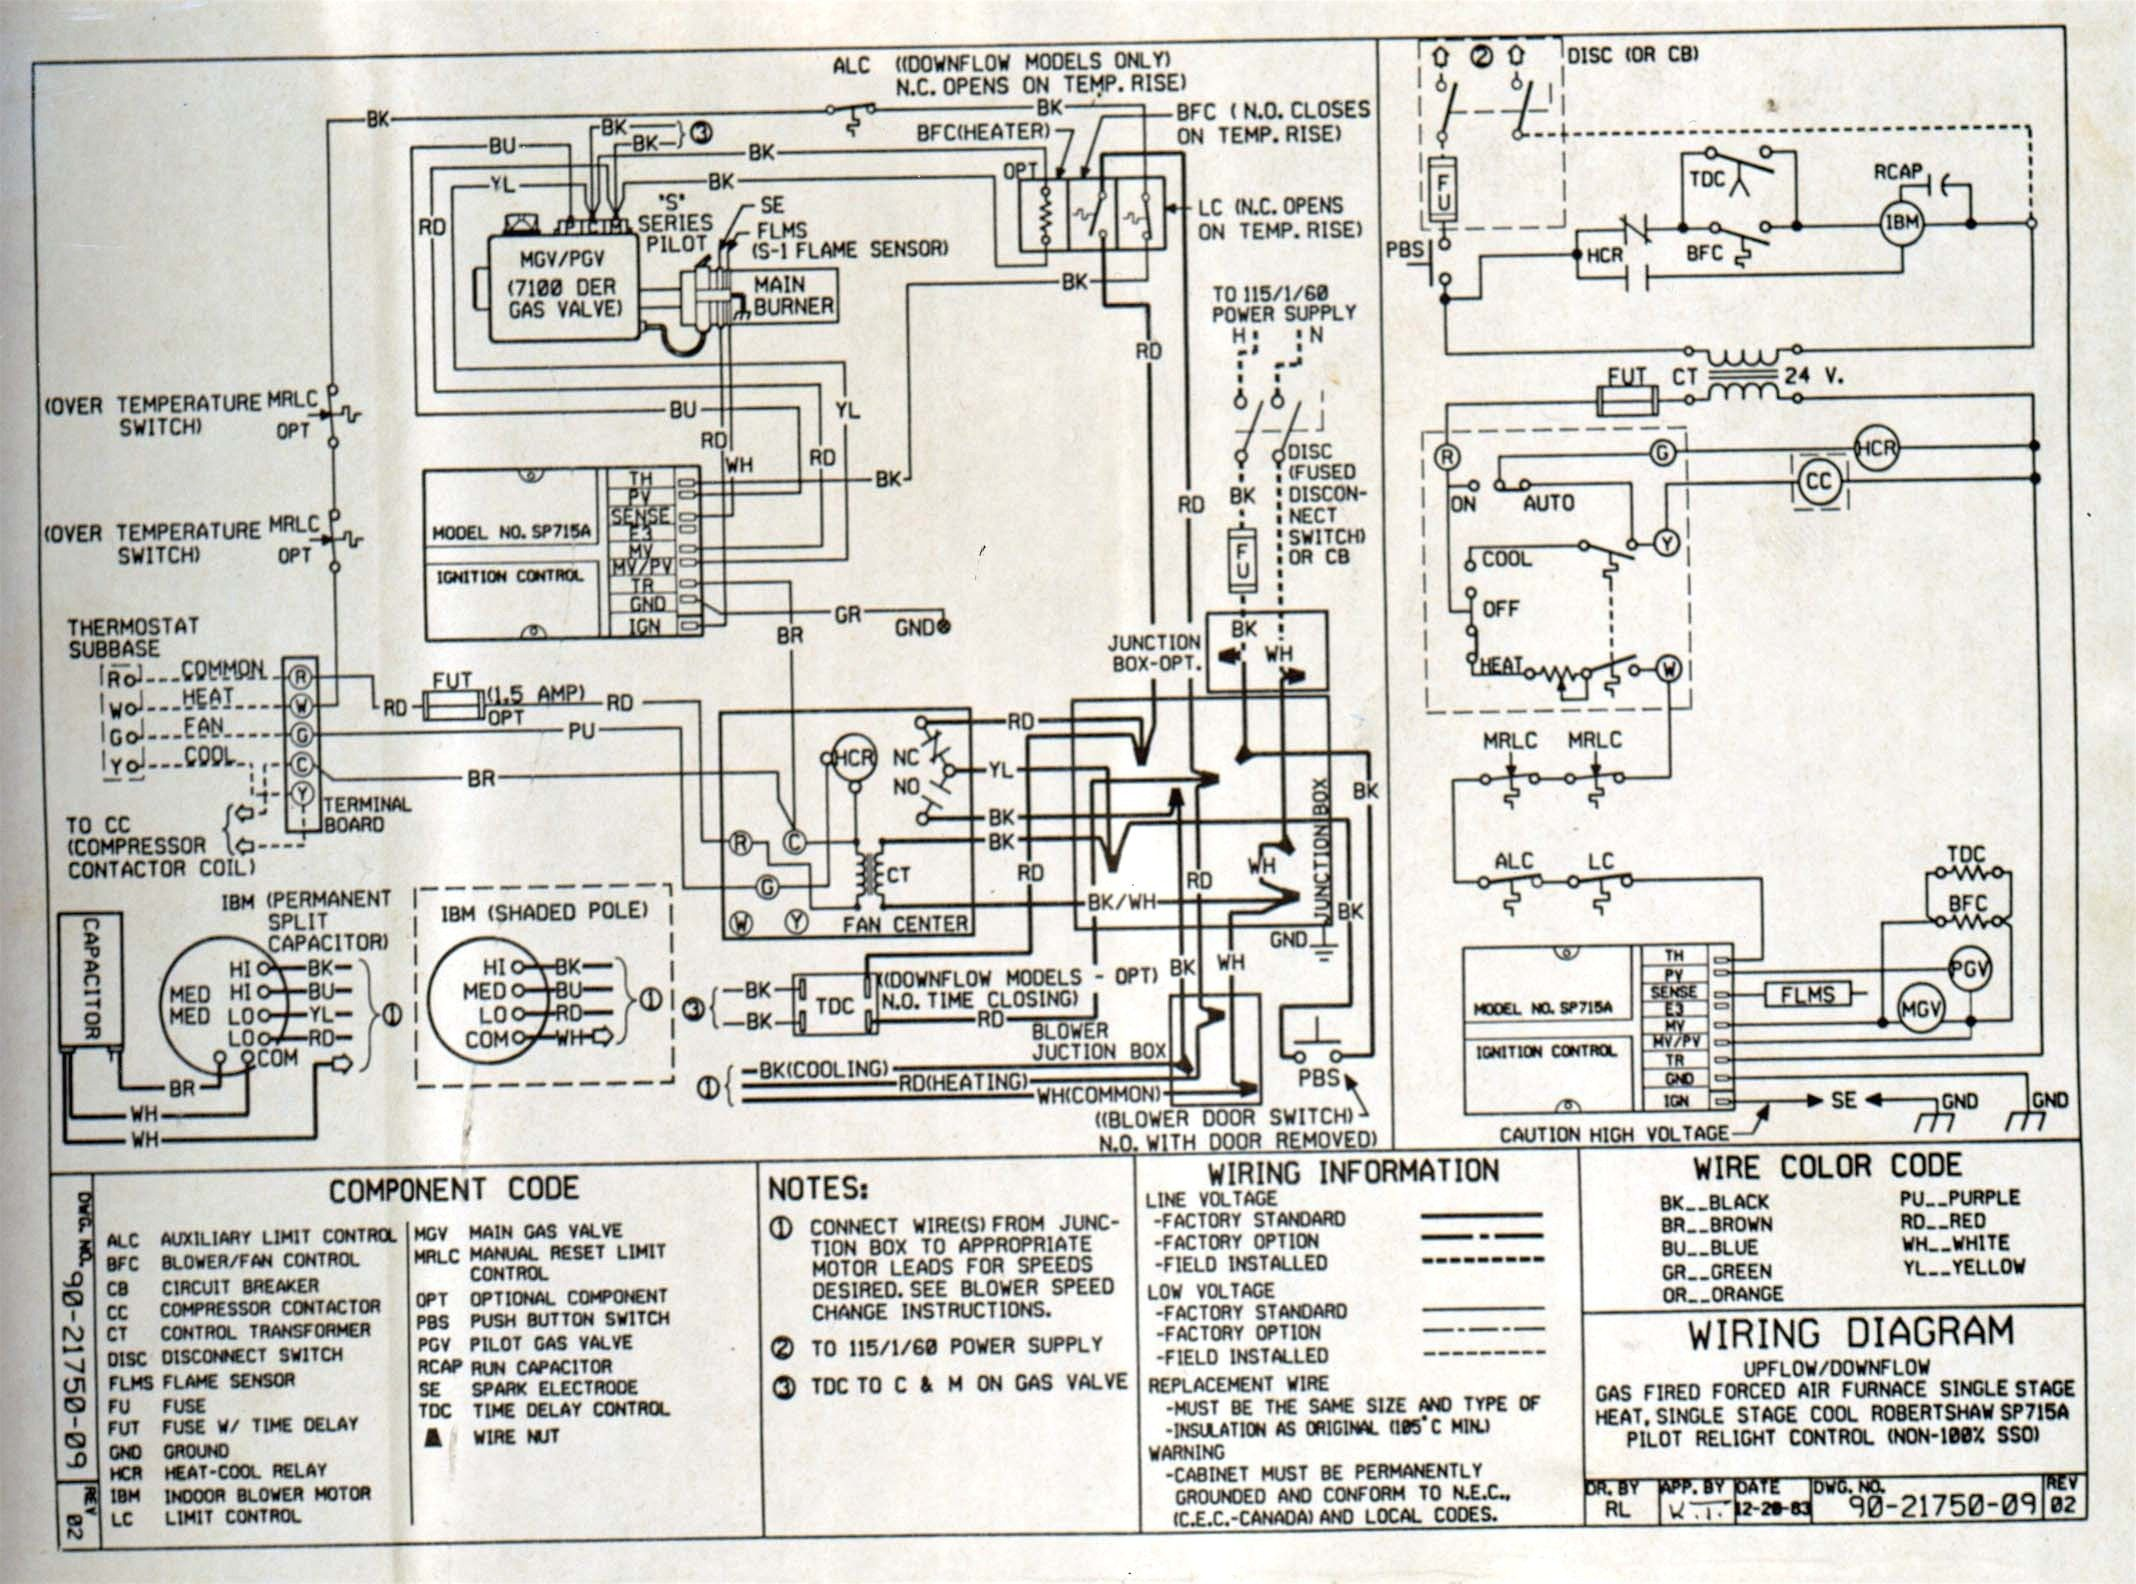 5e206 Coleman Package Unit Wiring Diagram